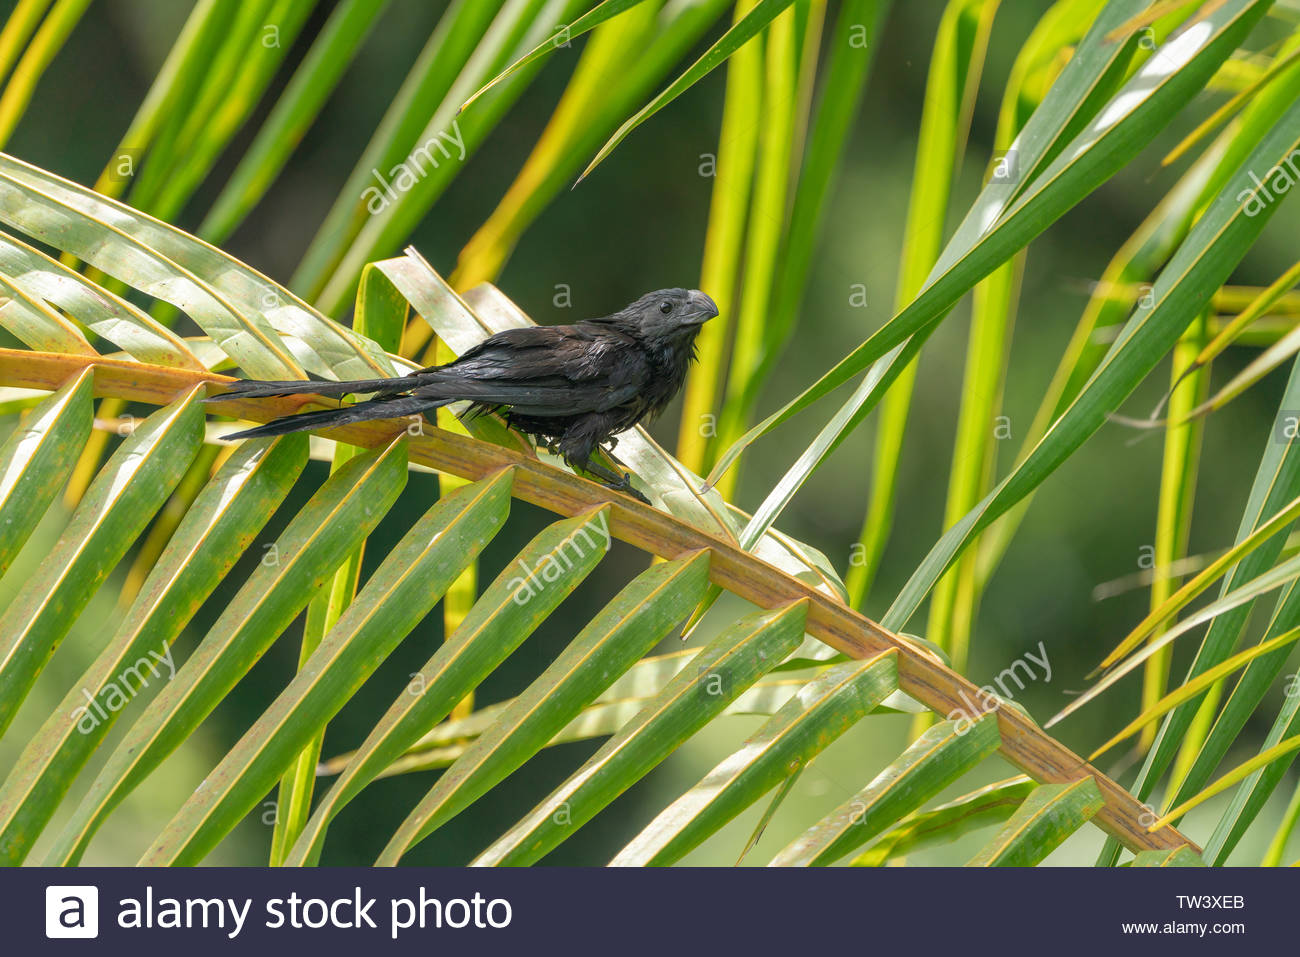 Smooth-billed Ani (Crotophaga ani) perched, taken in  Costa Rica - Stock Image